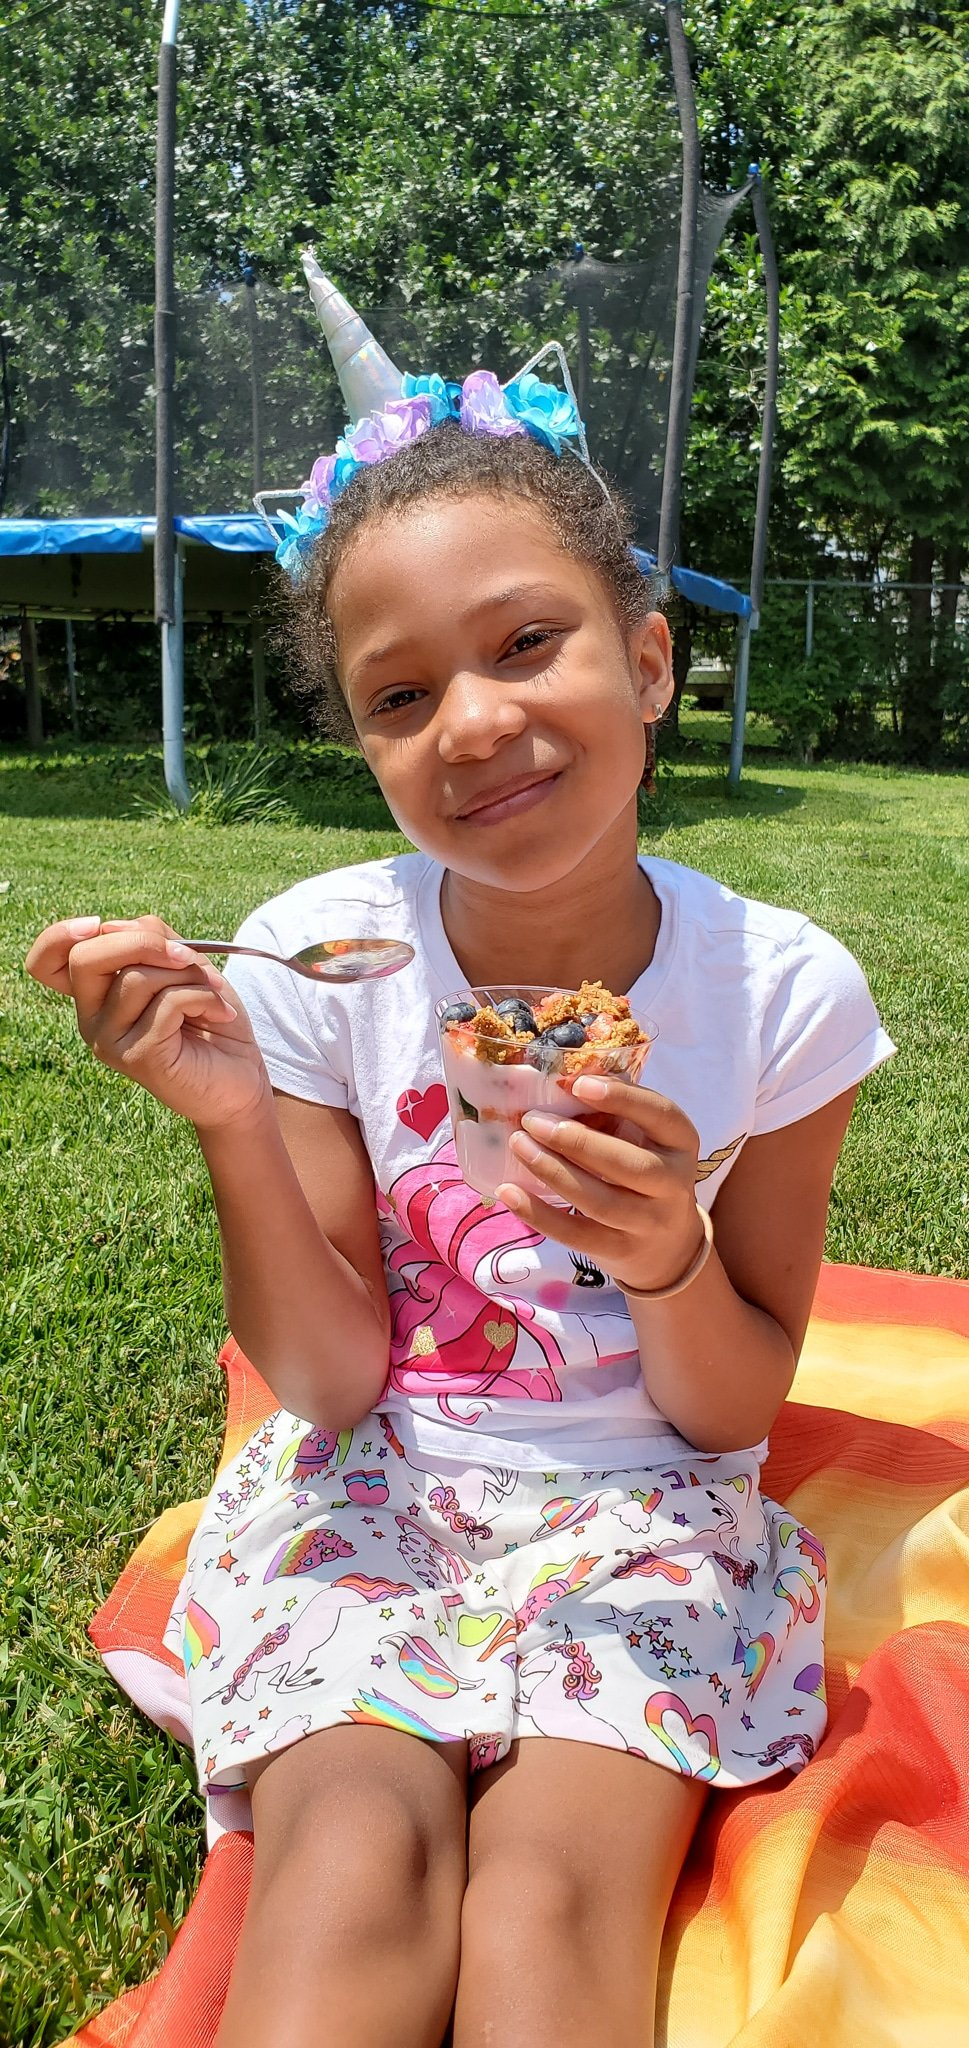 Backyard Picnic with Yoplait Esuun Happy. Grab your picnic baskets! It's time to host your very own backyard picnic featuring the foods your family loves. No need to leave home for this bunch of fun, just pick a date and then prep your picnic baskets.